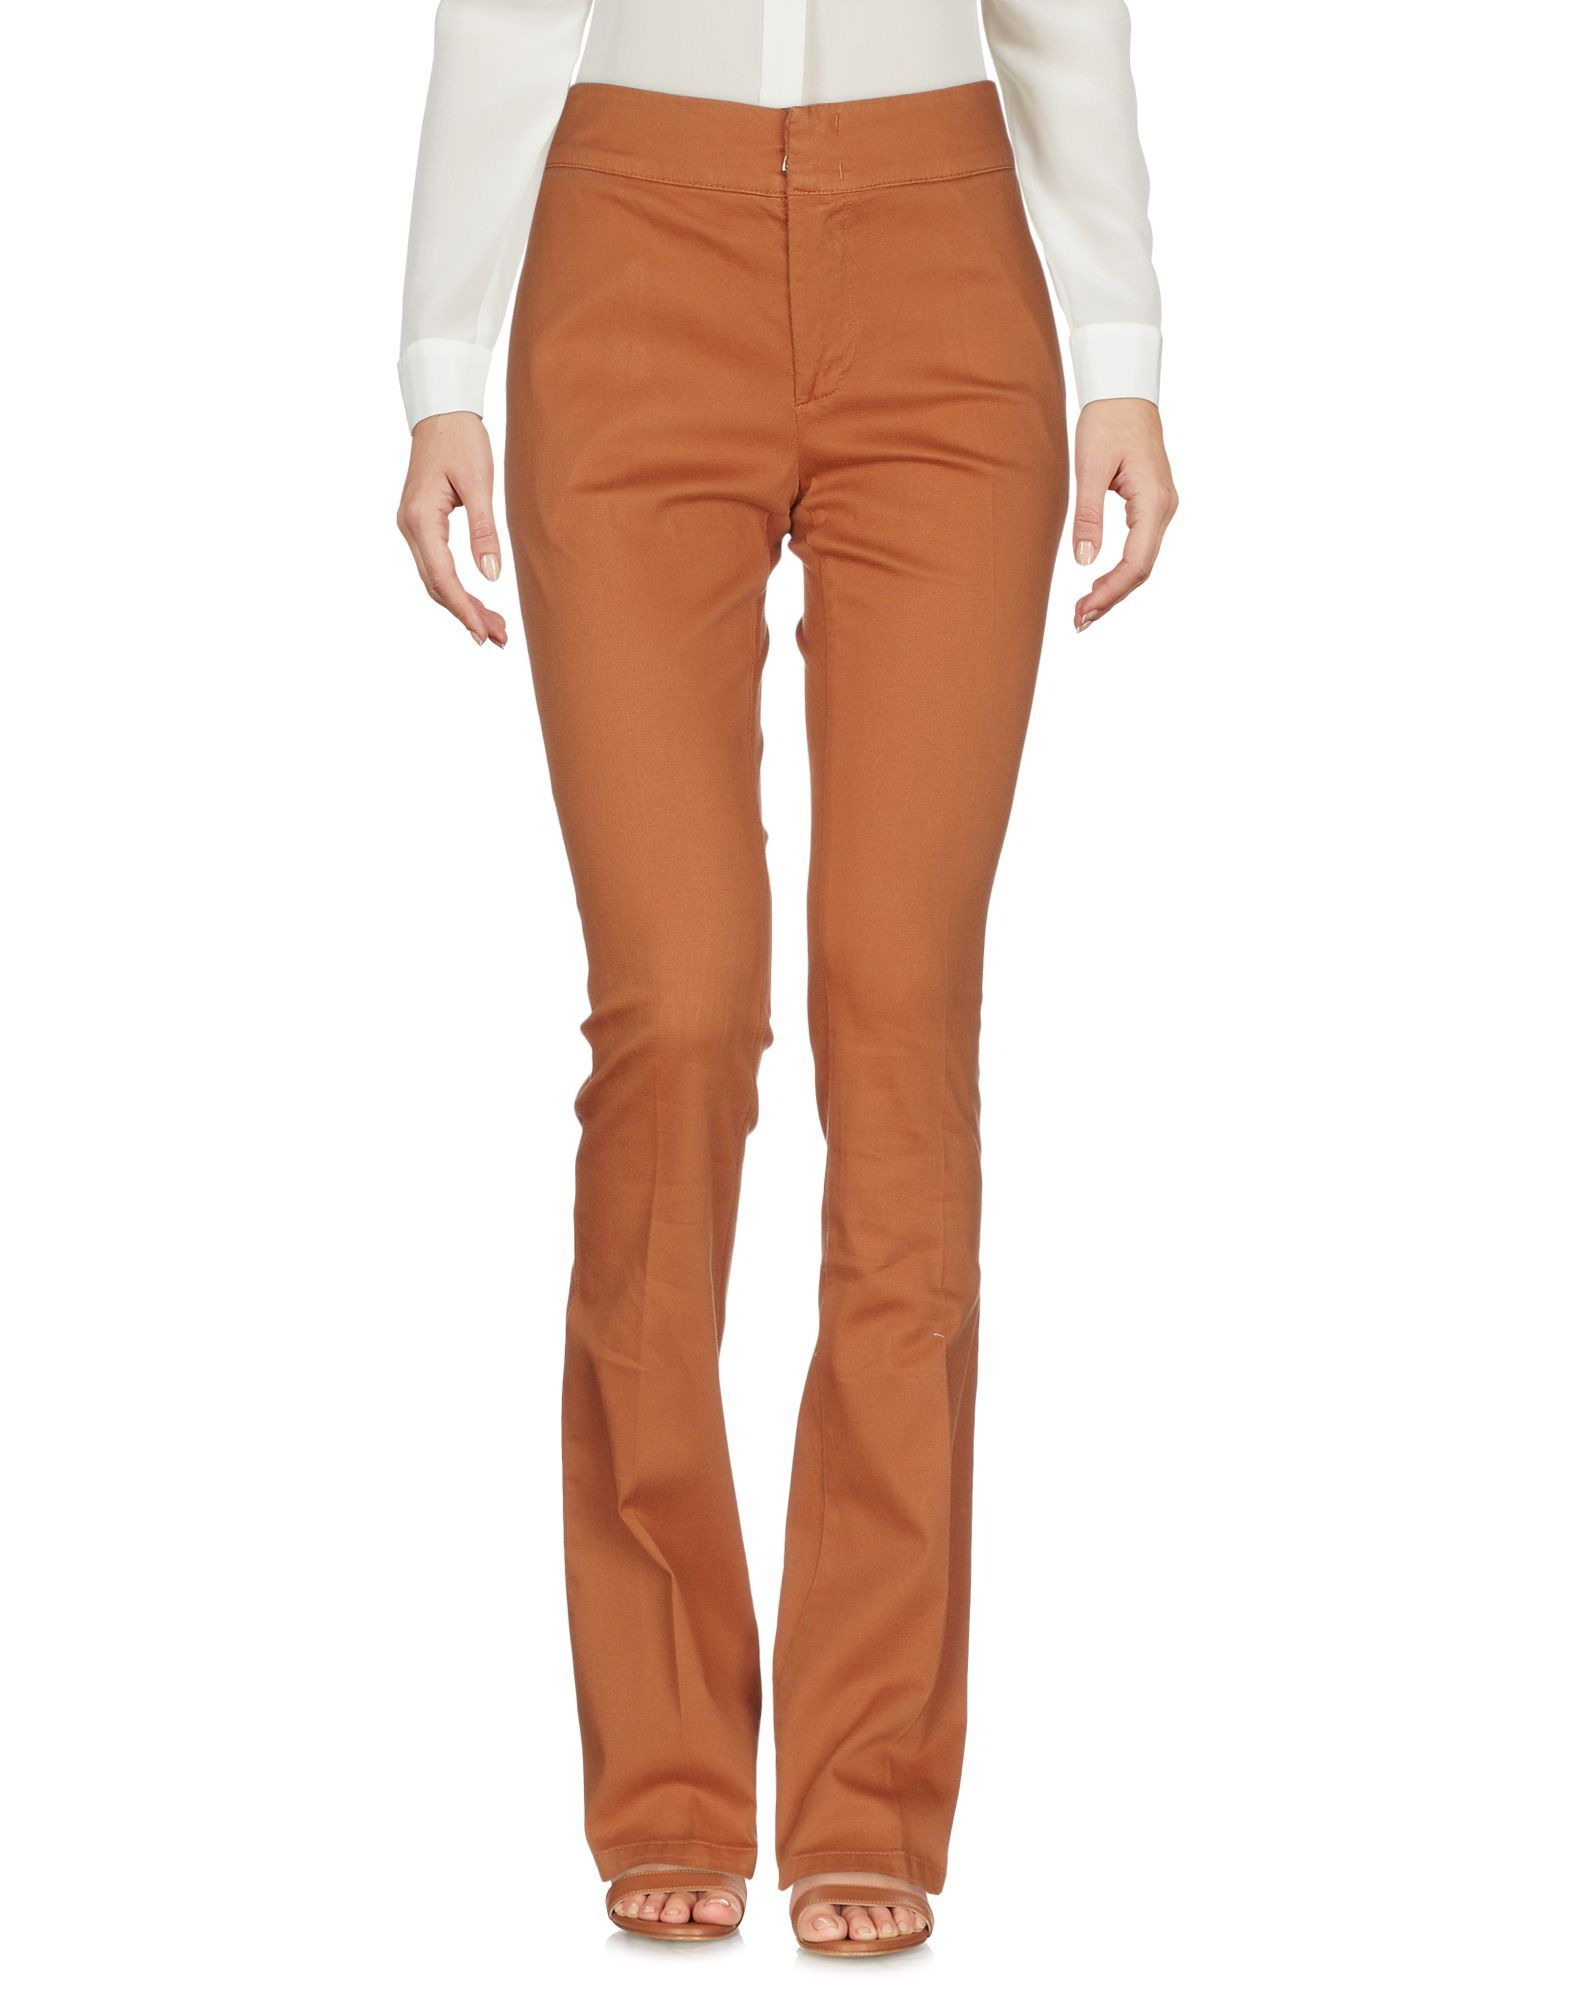 Manila Grace Brown Cotton Regular Fit Trousers